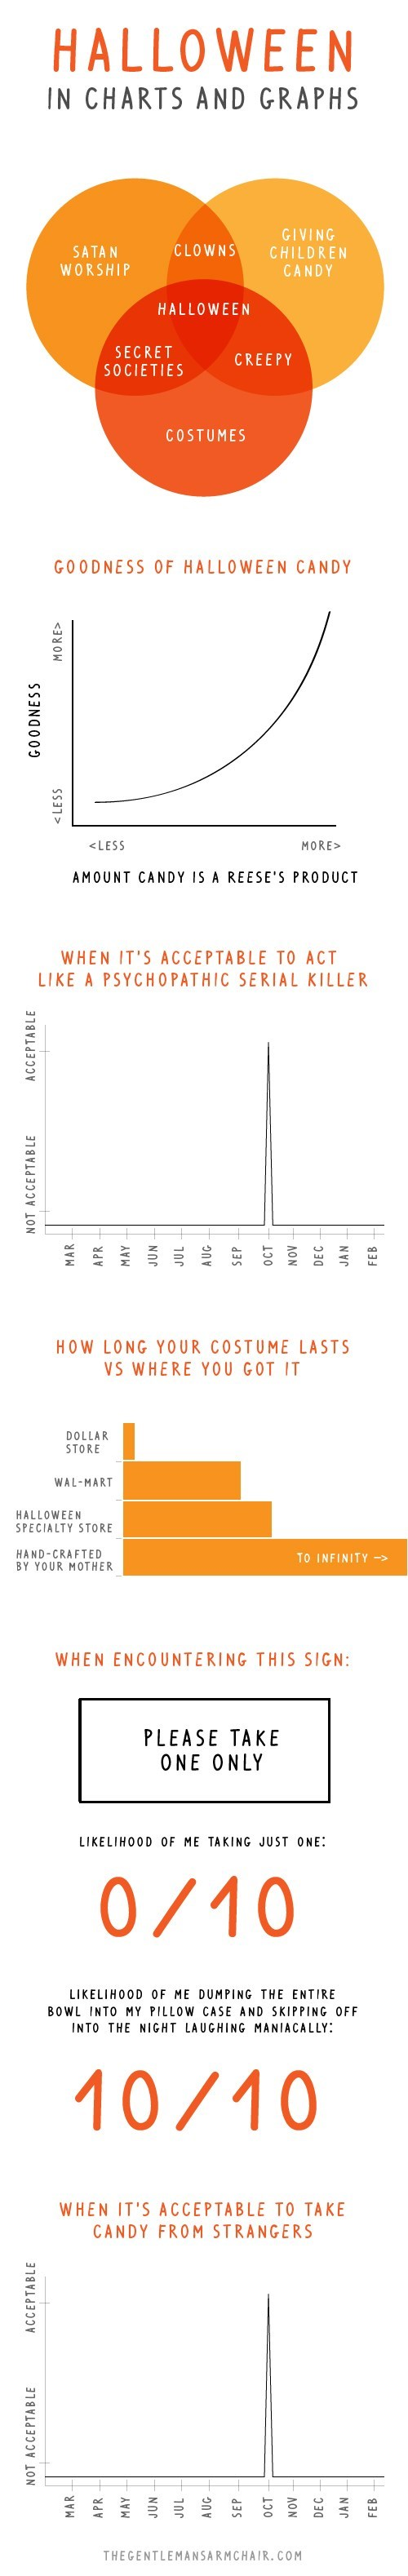 All Things Halloween in Graphs and Charts